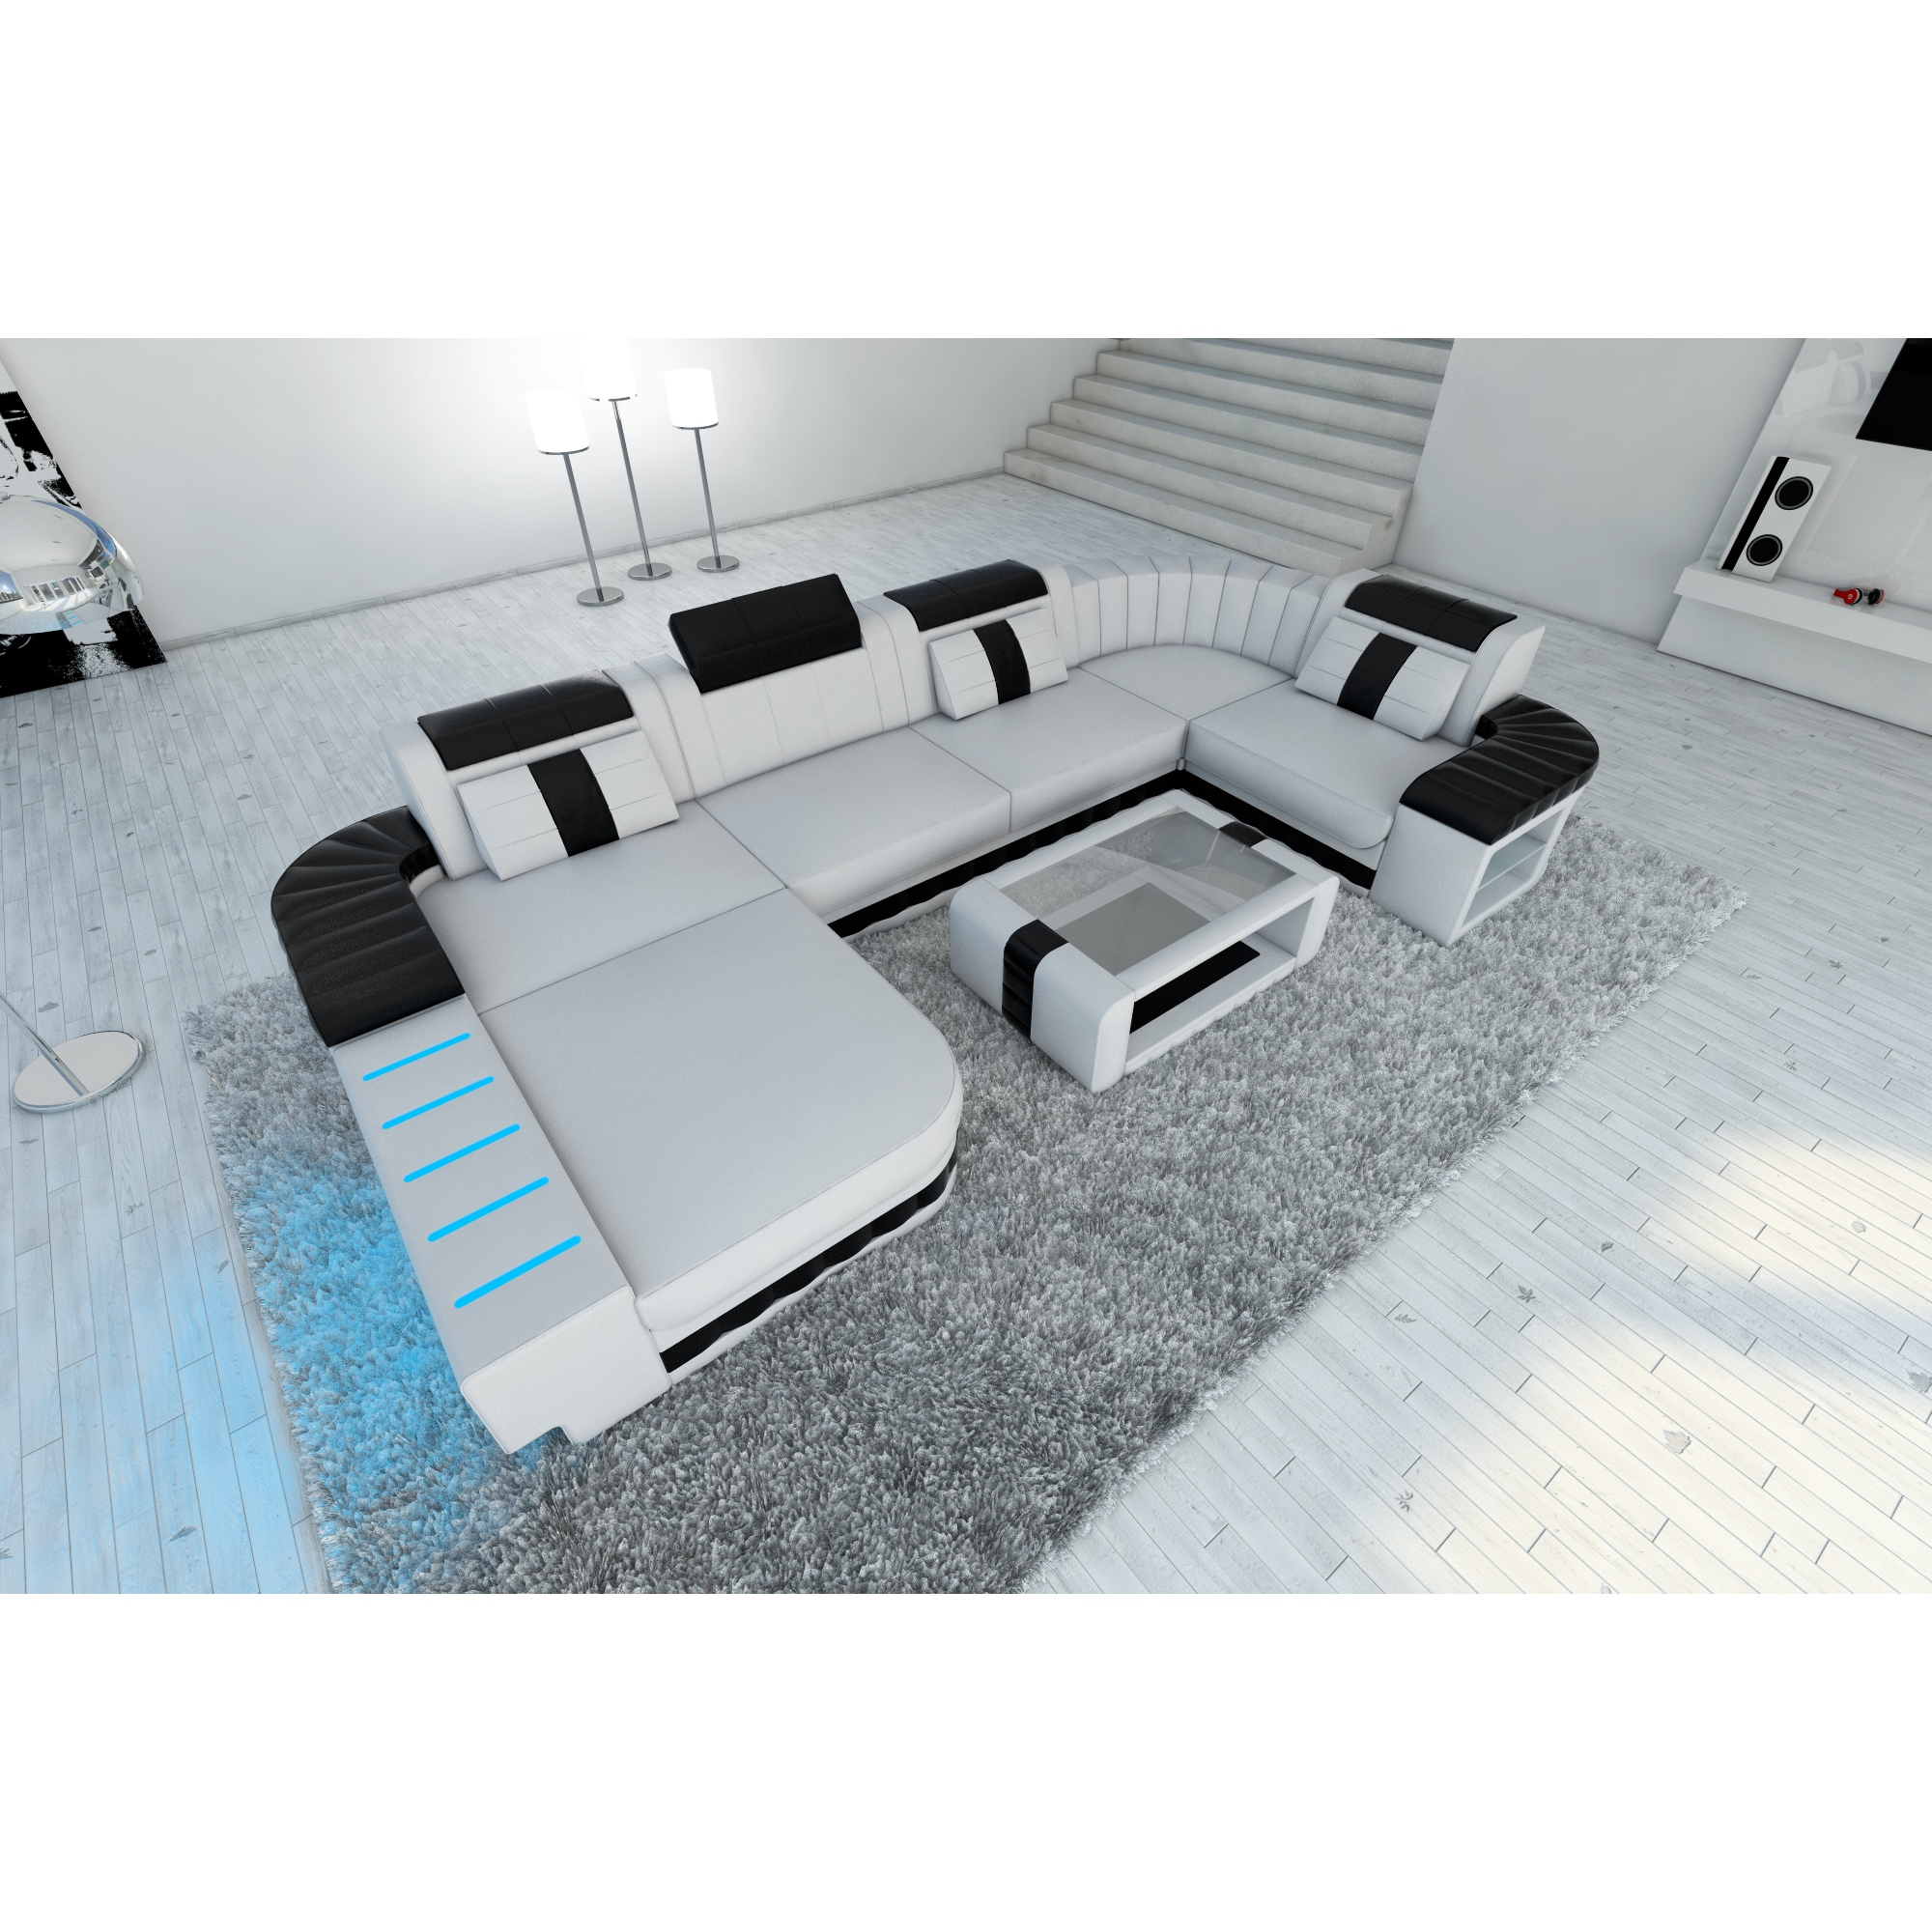 Terrific Boston Led Lights White Leather U Shaped Sectional Sofa Spiritservingveterans Wood Chair Design Ideas Spiritservingveteransorg